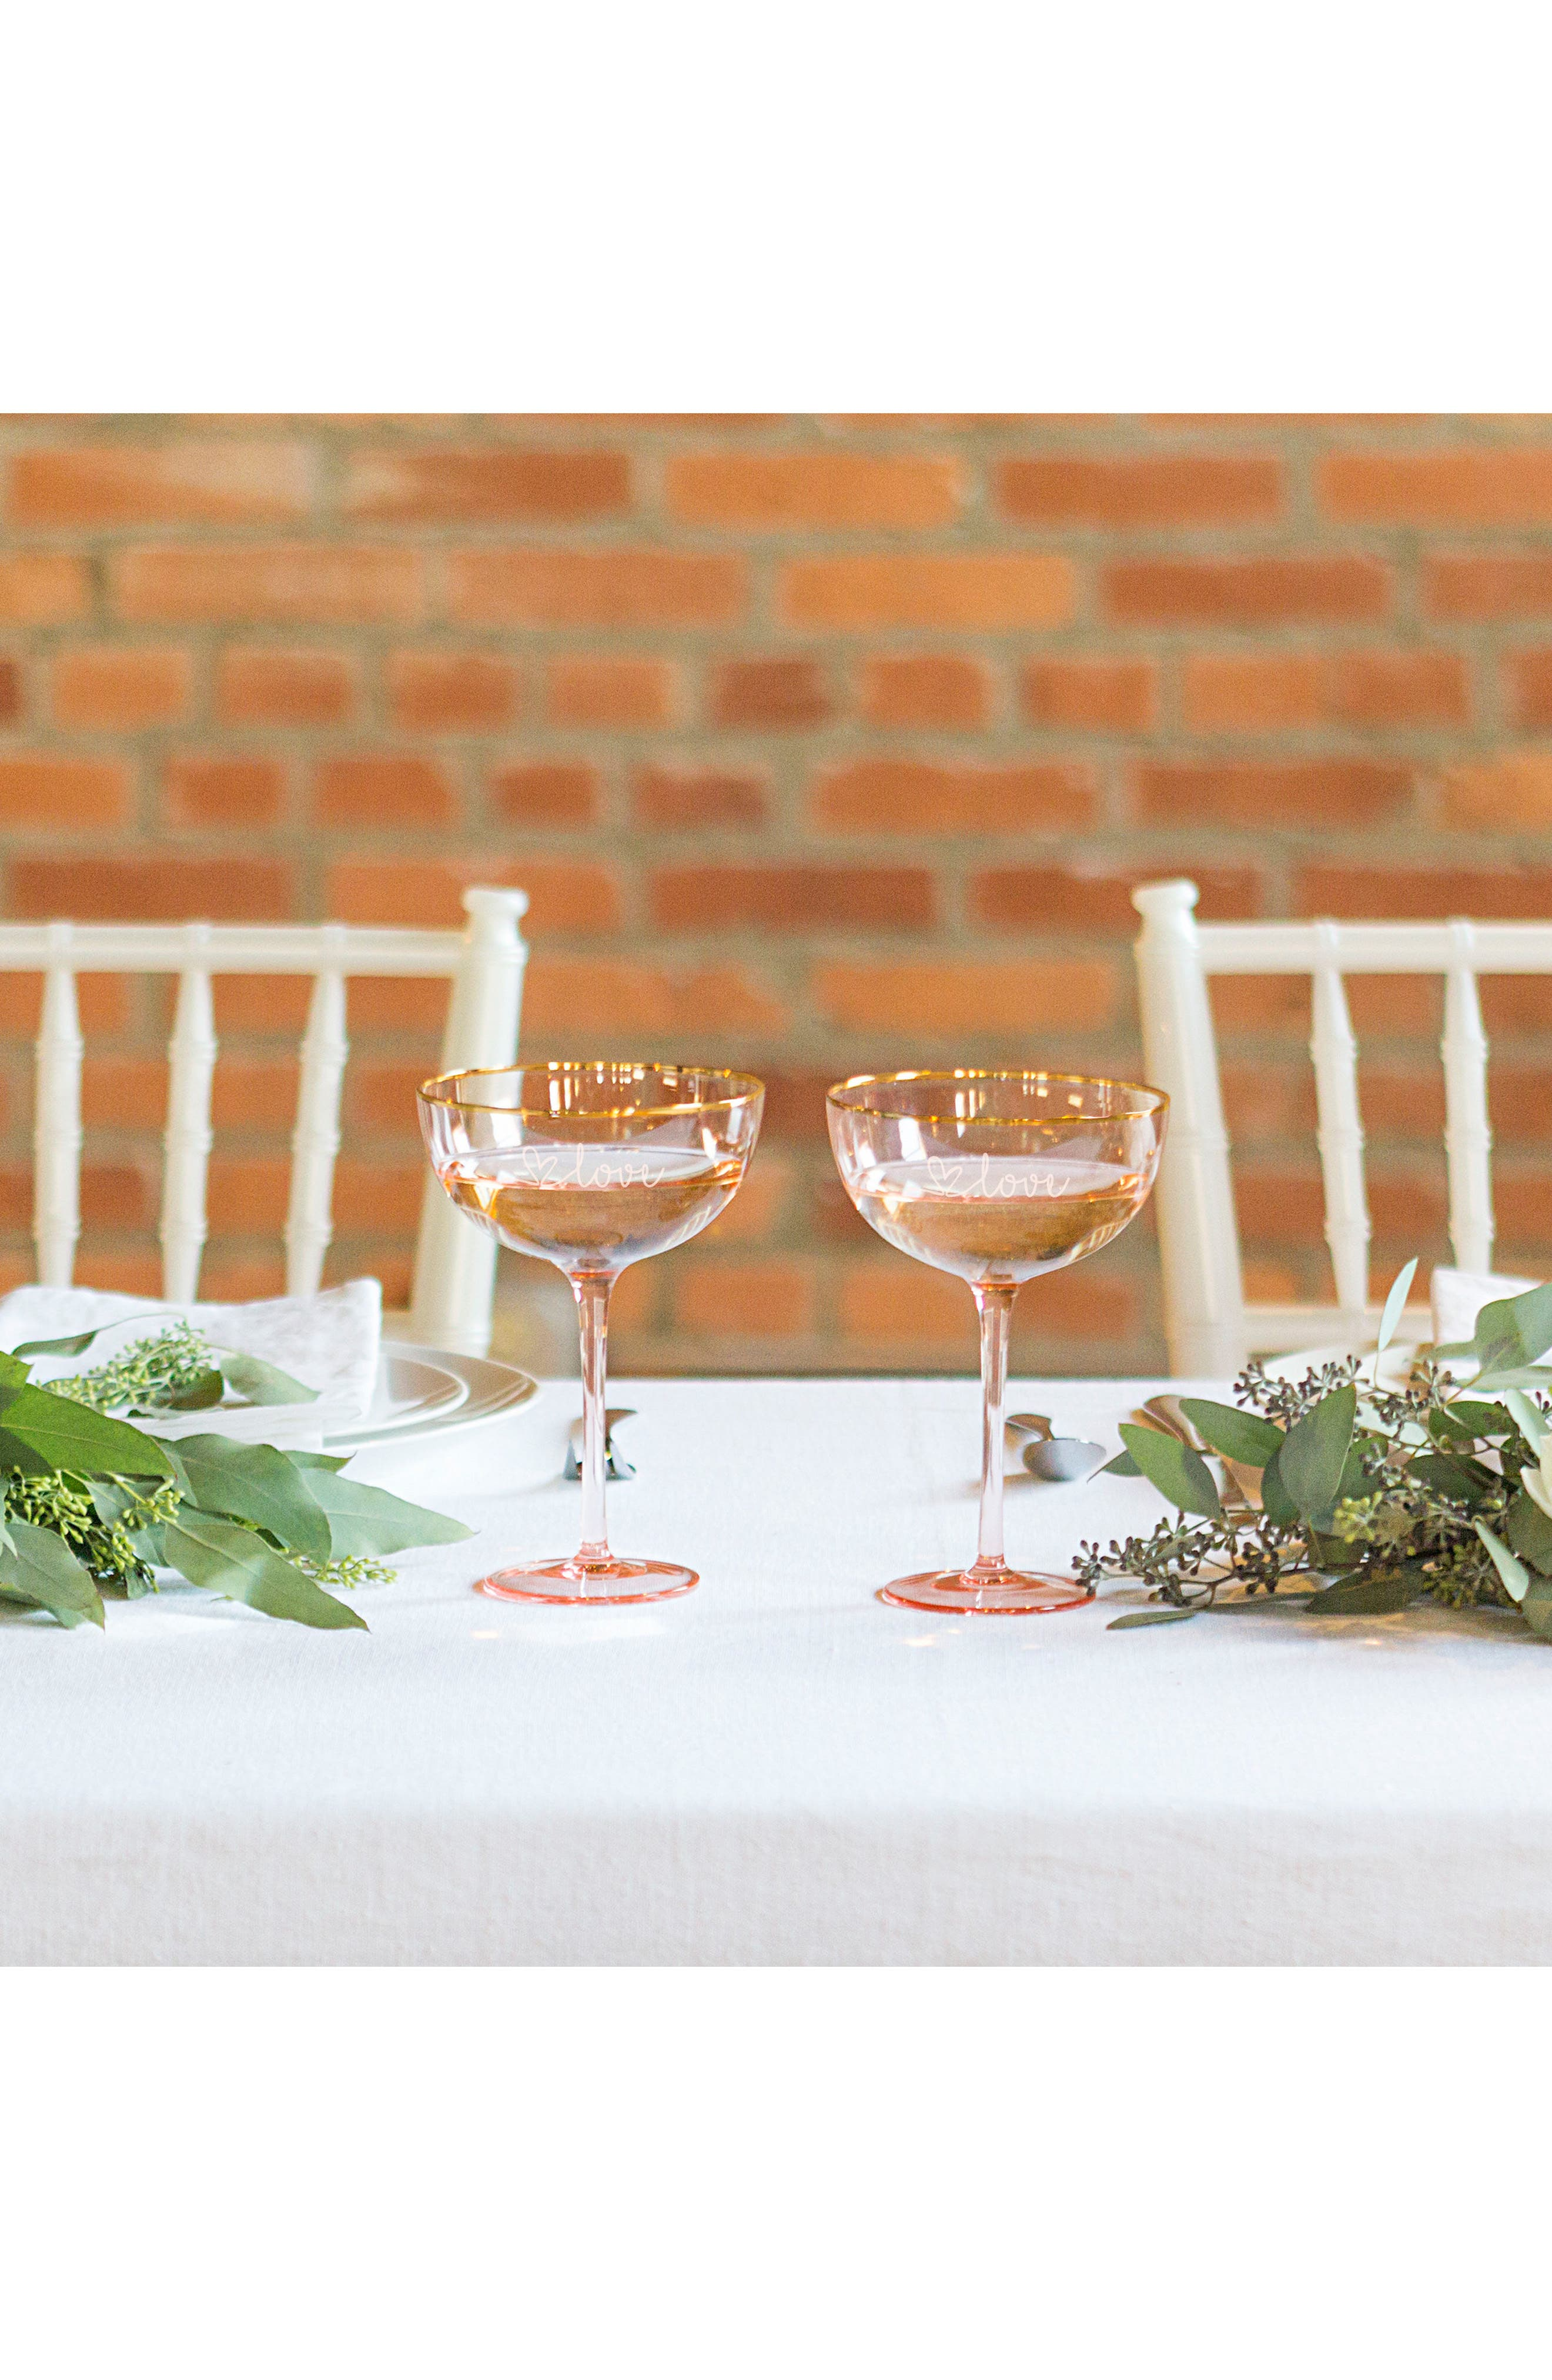 Love Set of 2 Champagne Coupes,                             Alternate thumbnail 8, color,                             220